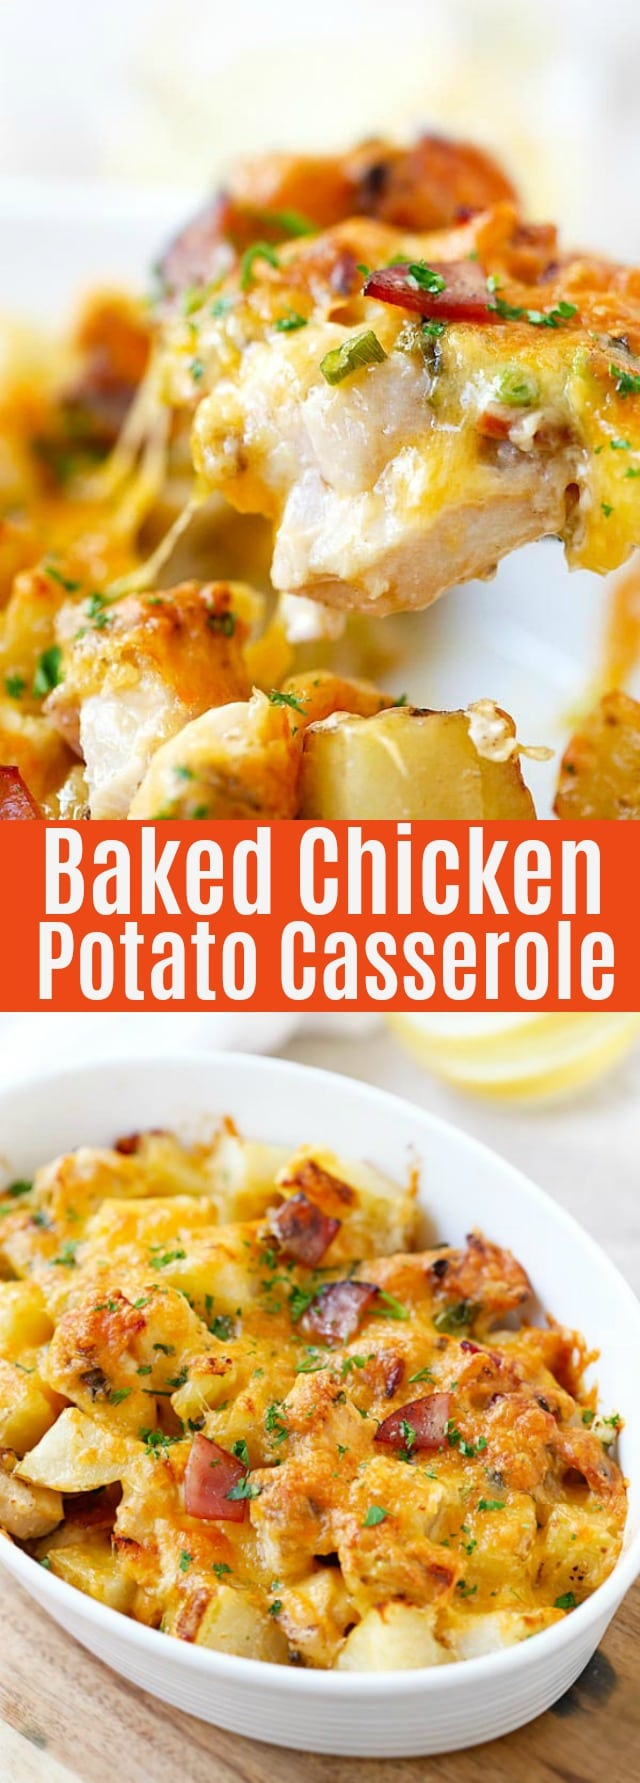 Baked Chicken and Potato Casserole